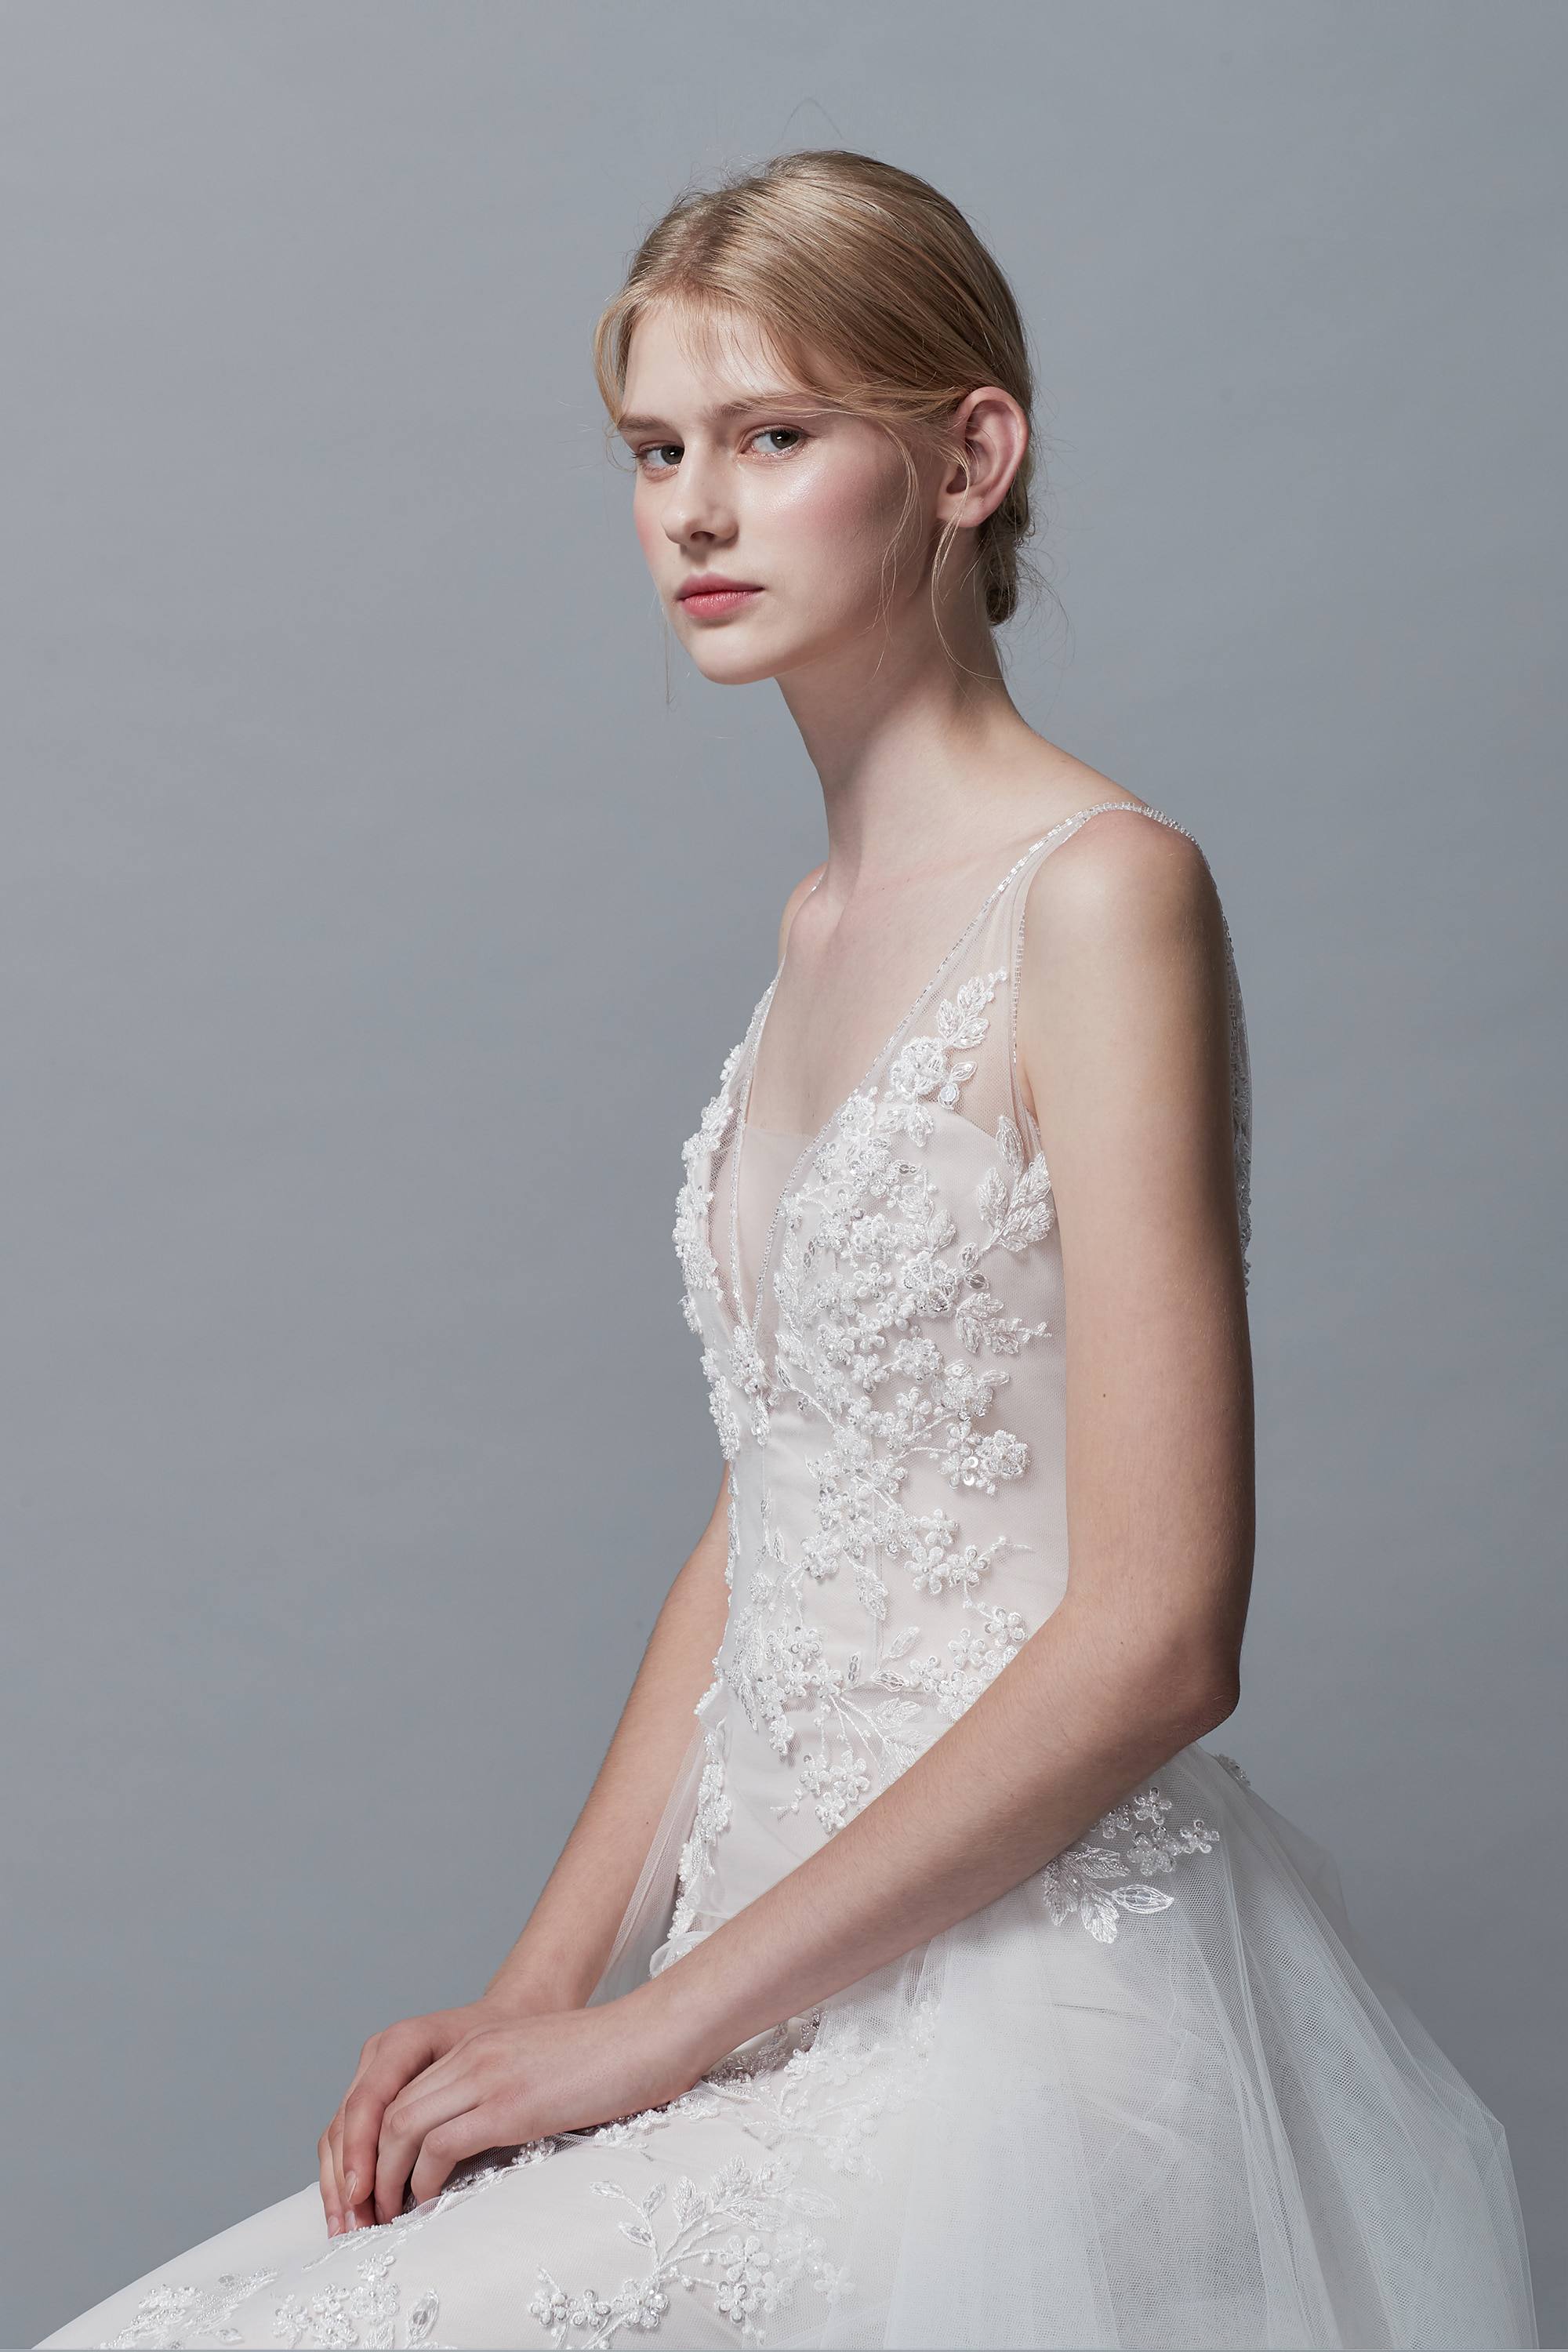 Ciel Blanc, WEDDING DRESS,